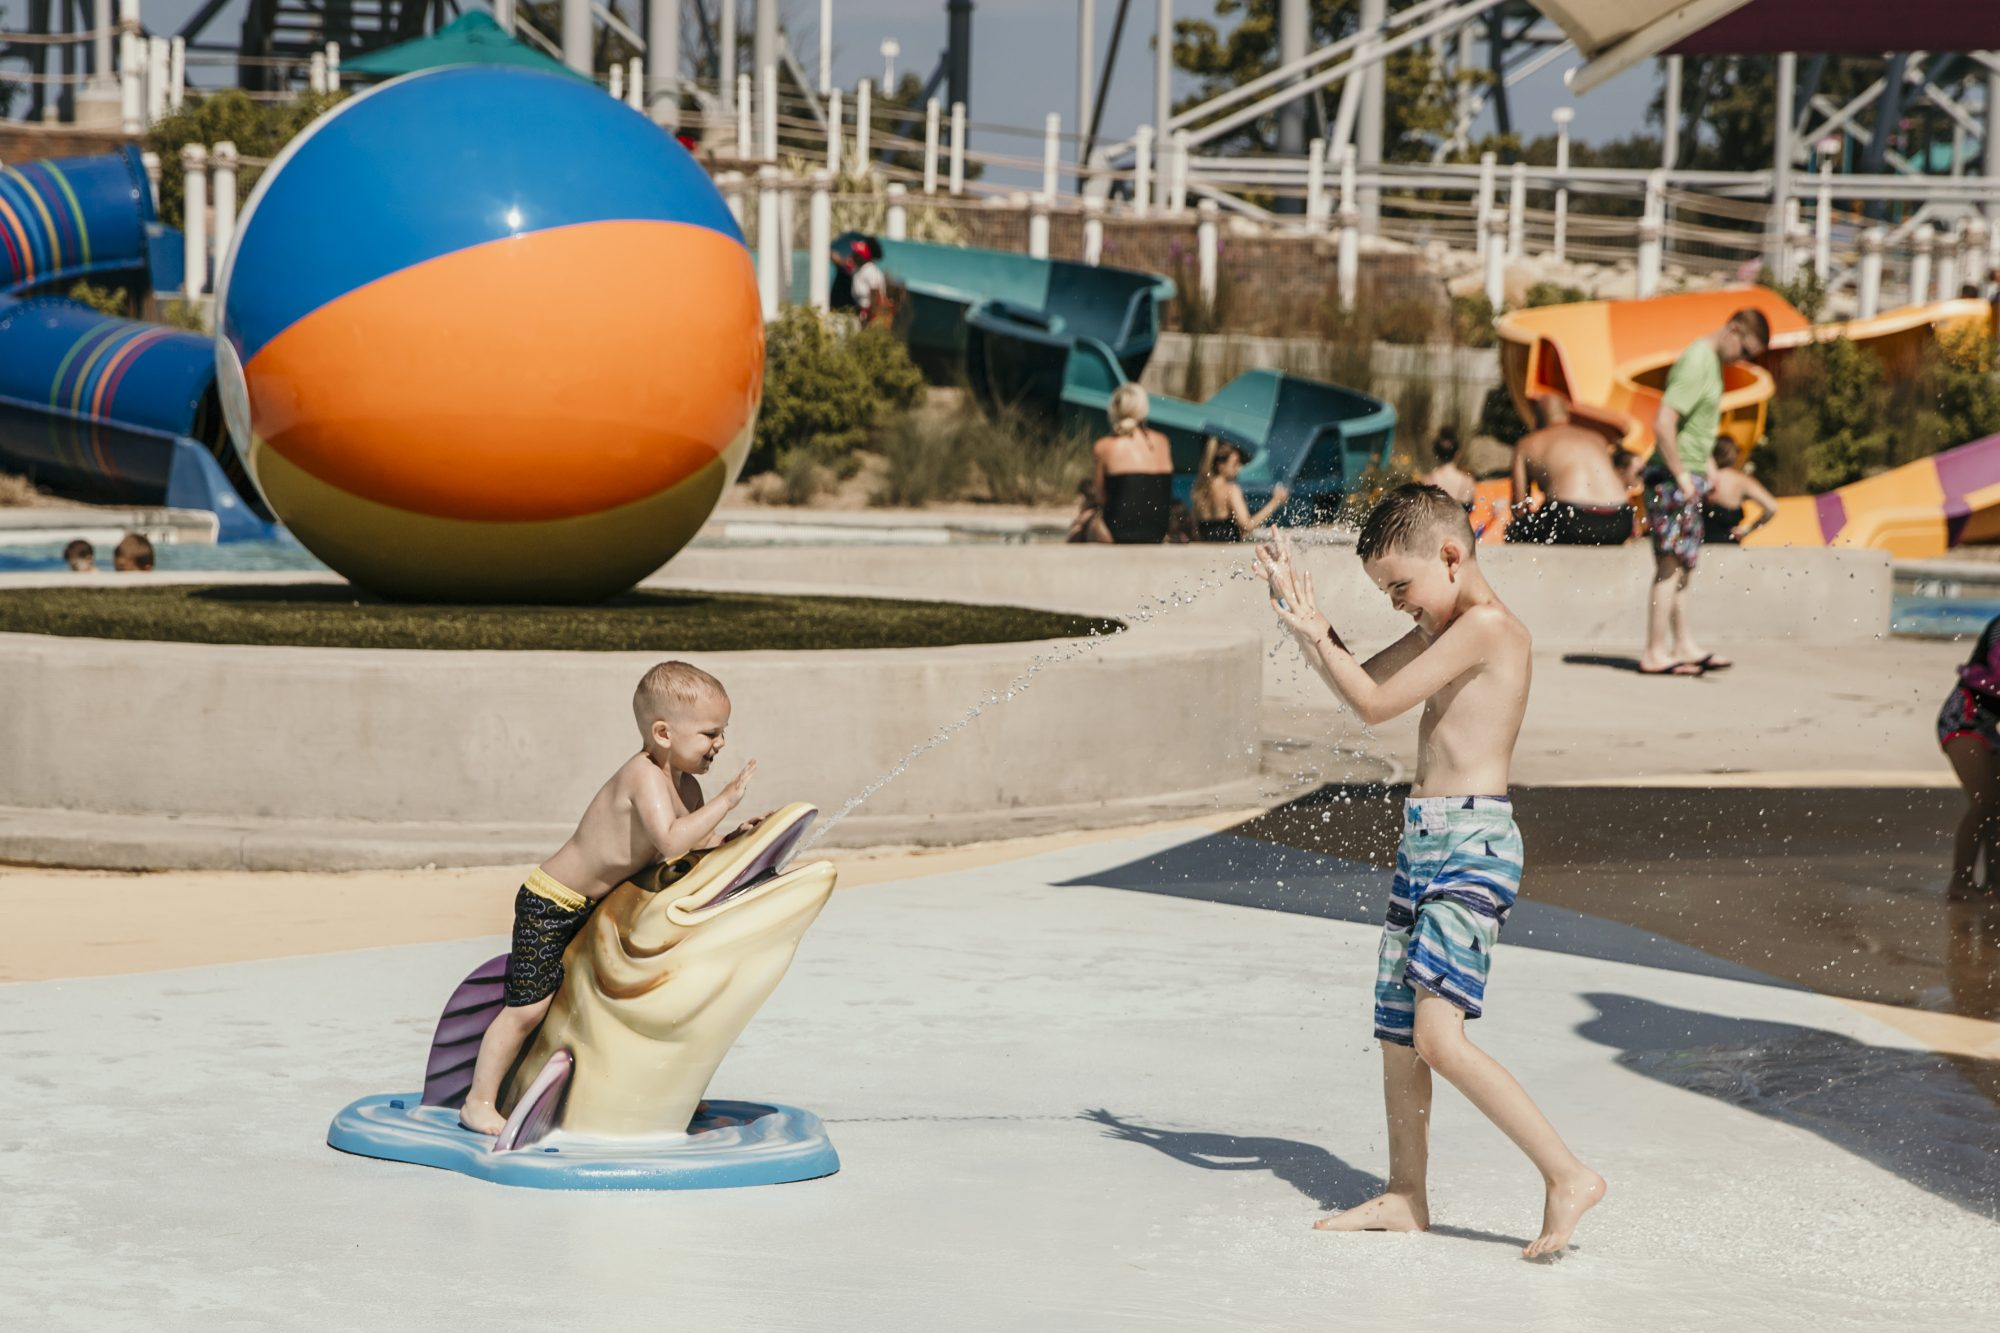 the boys playing in the water together in cedar point shores